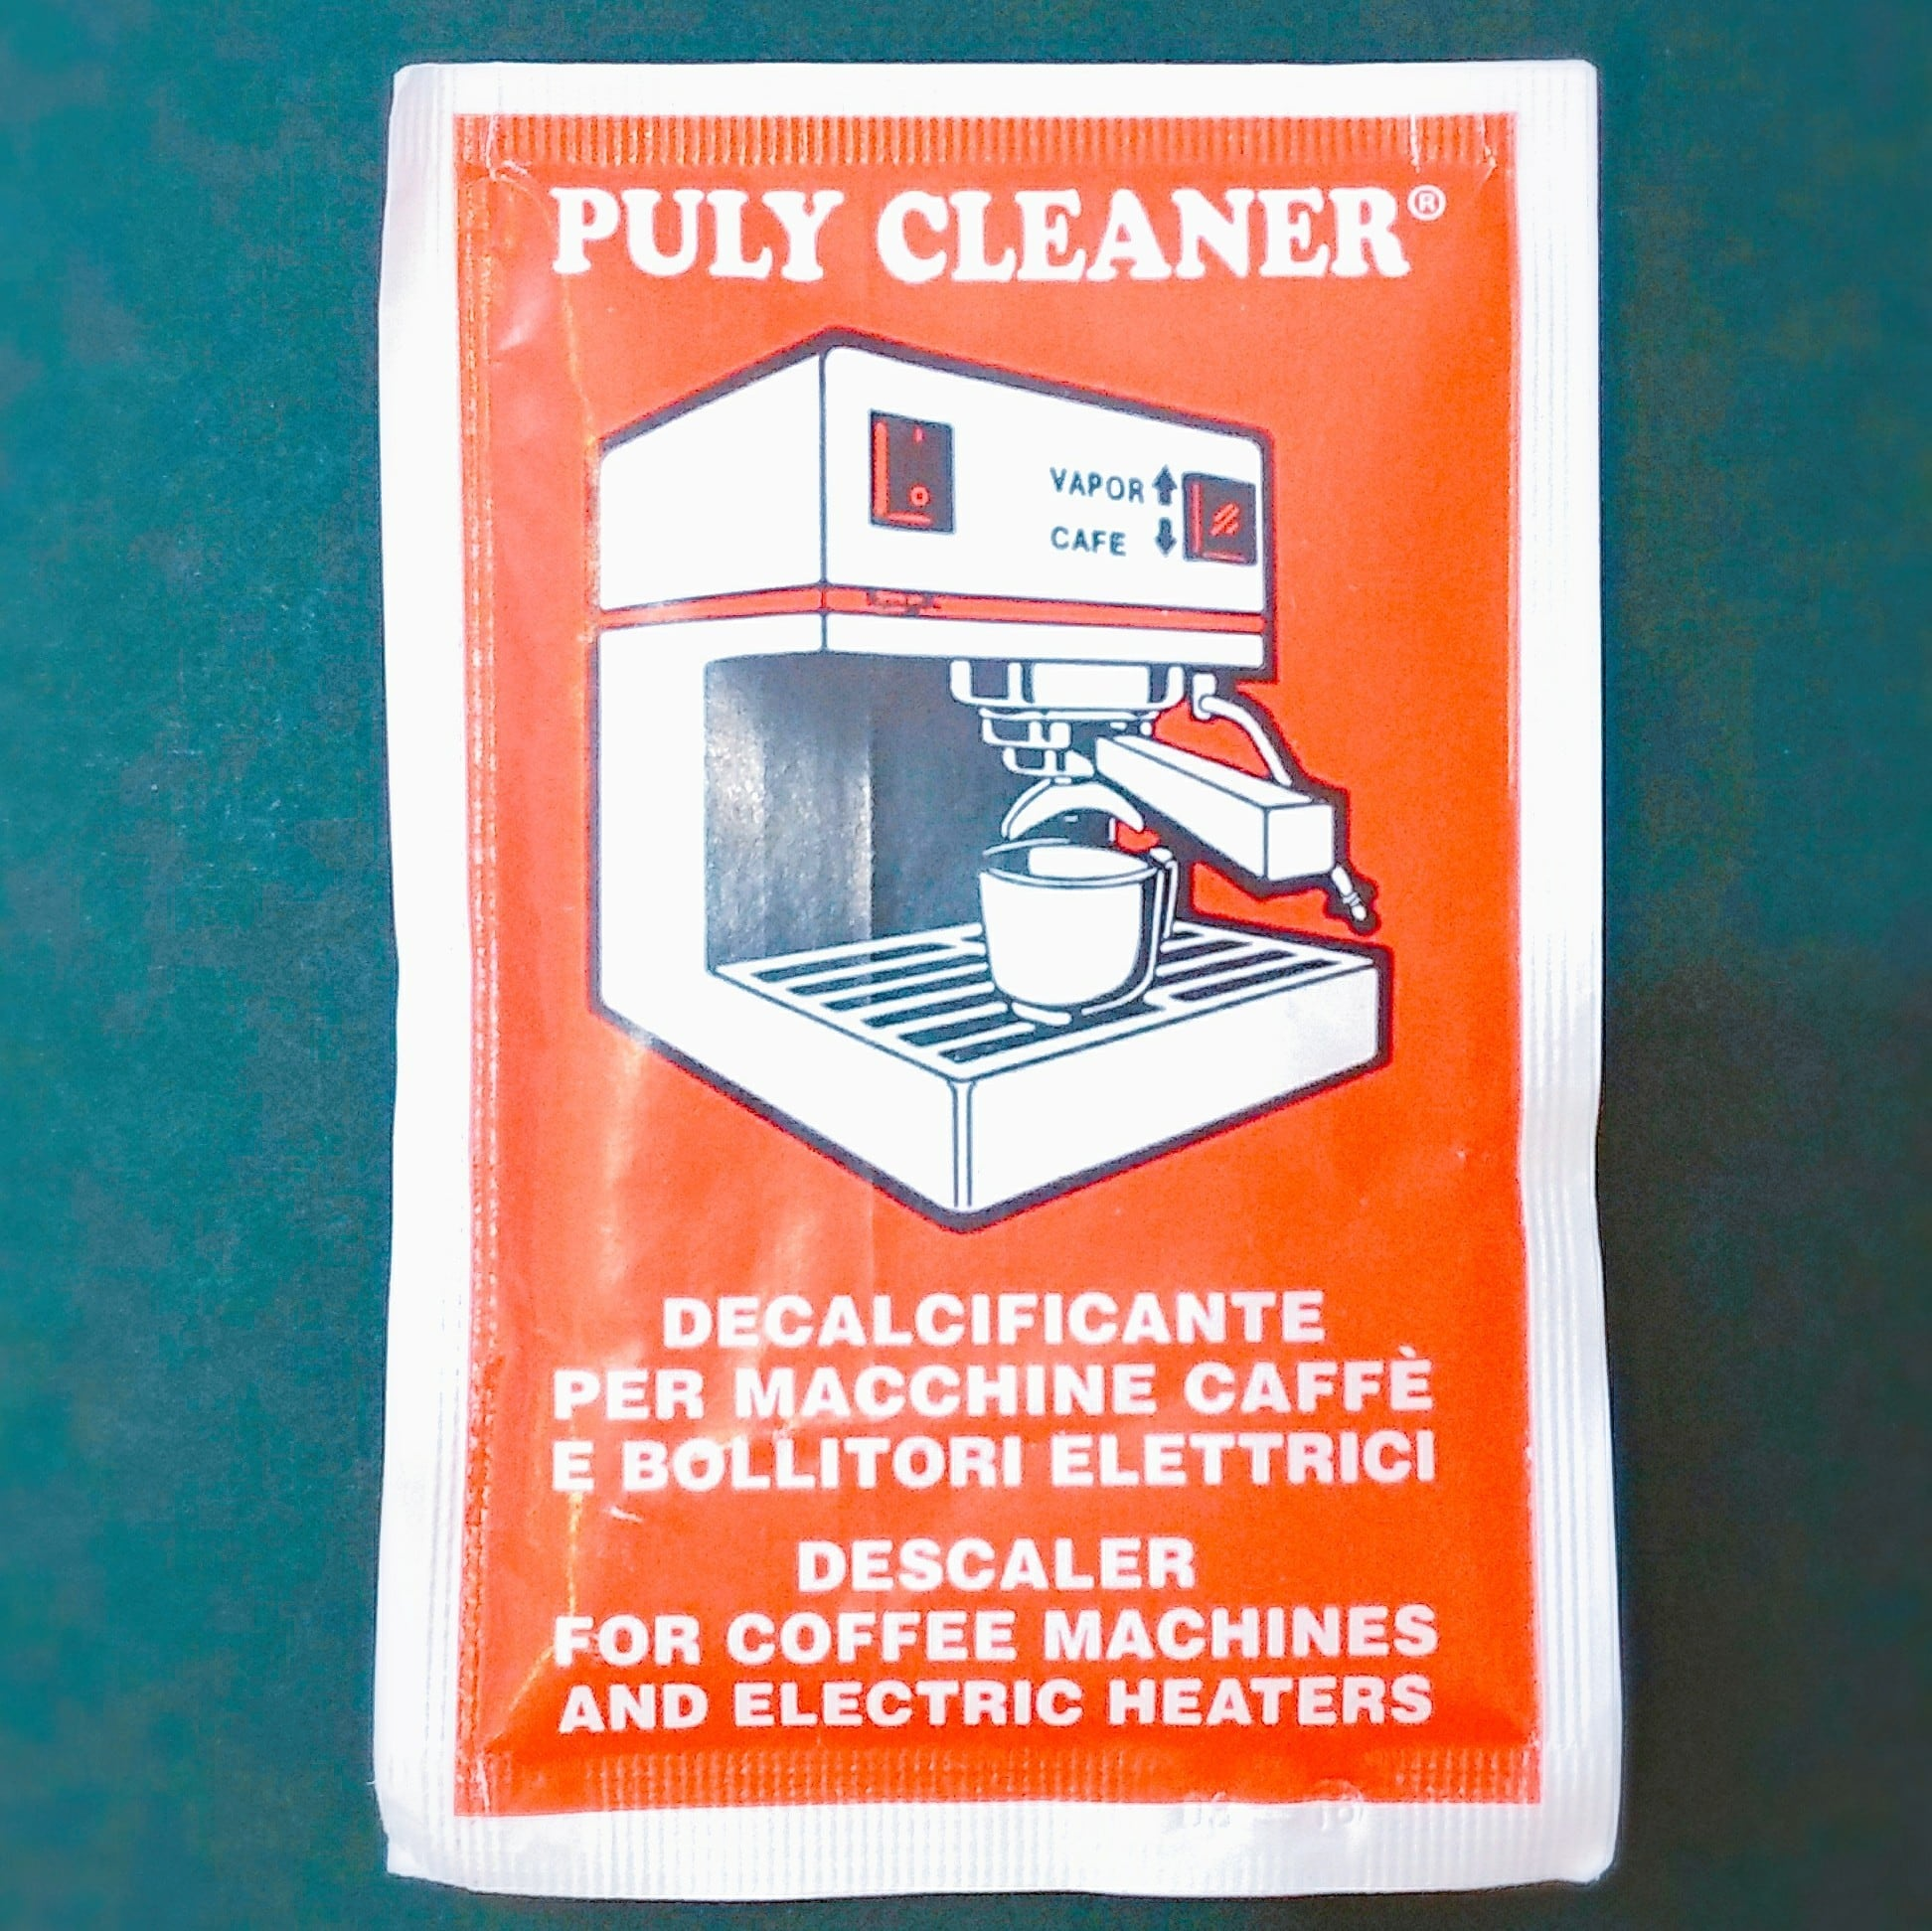 Puly CLEANER デスケーラー パウダー 1袋